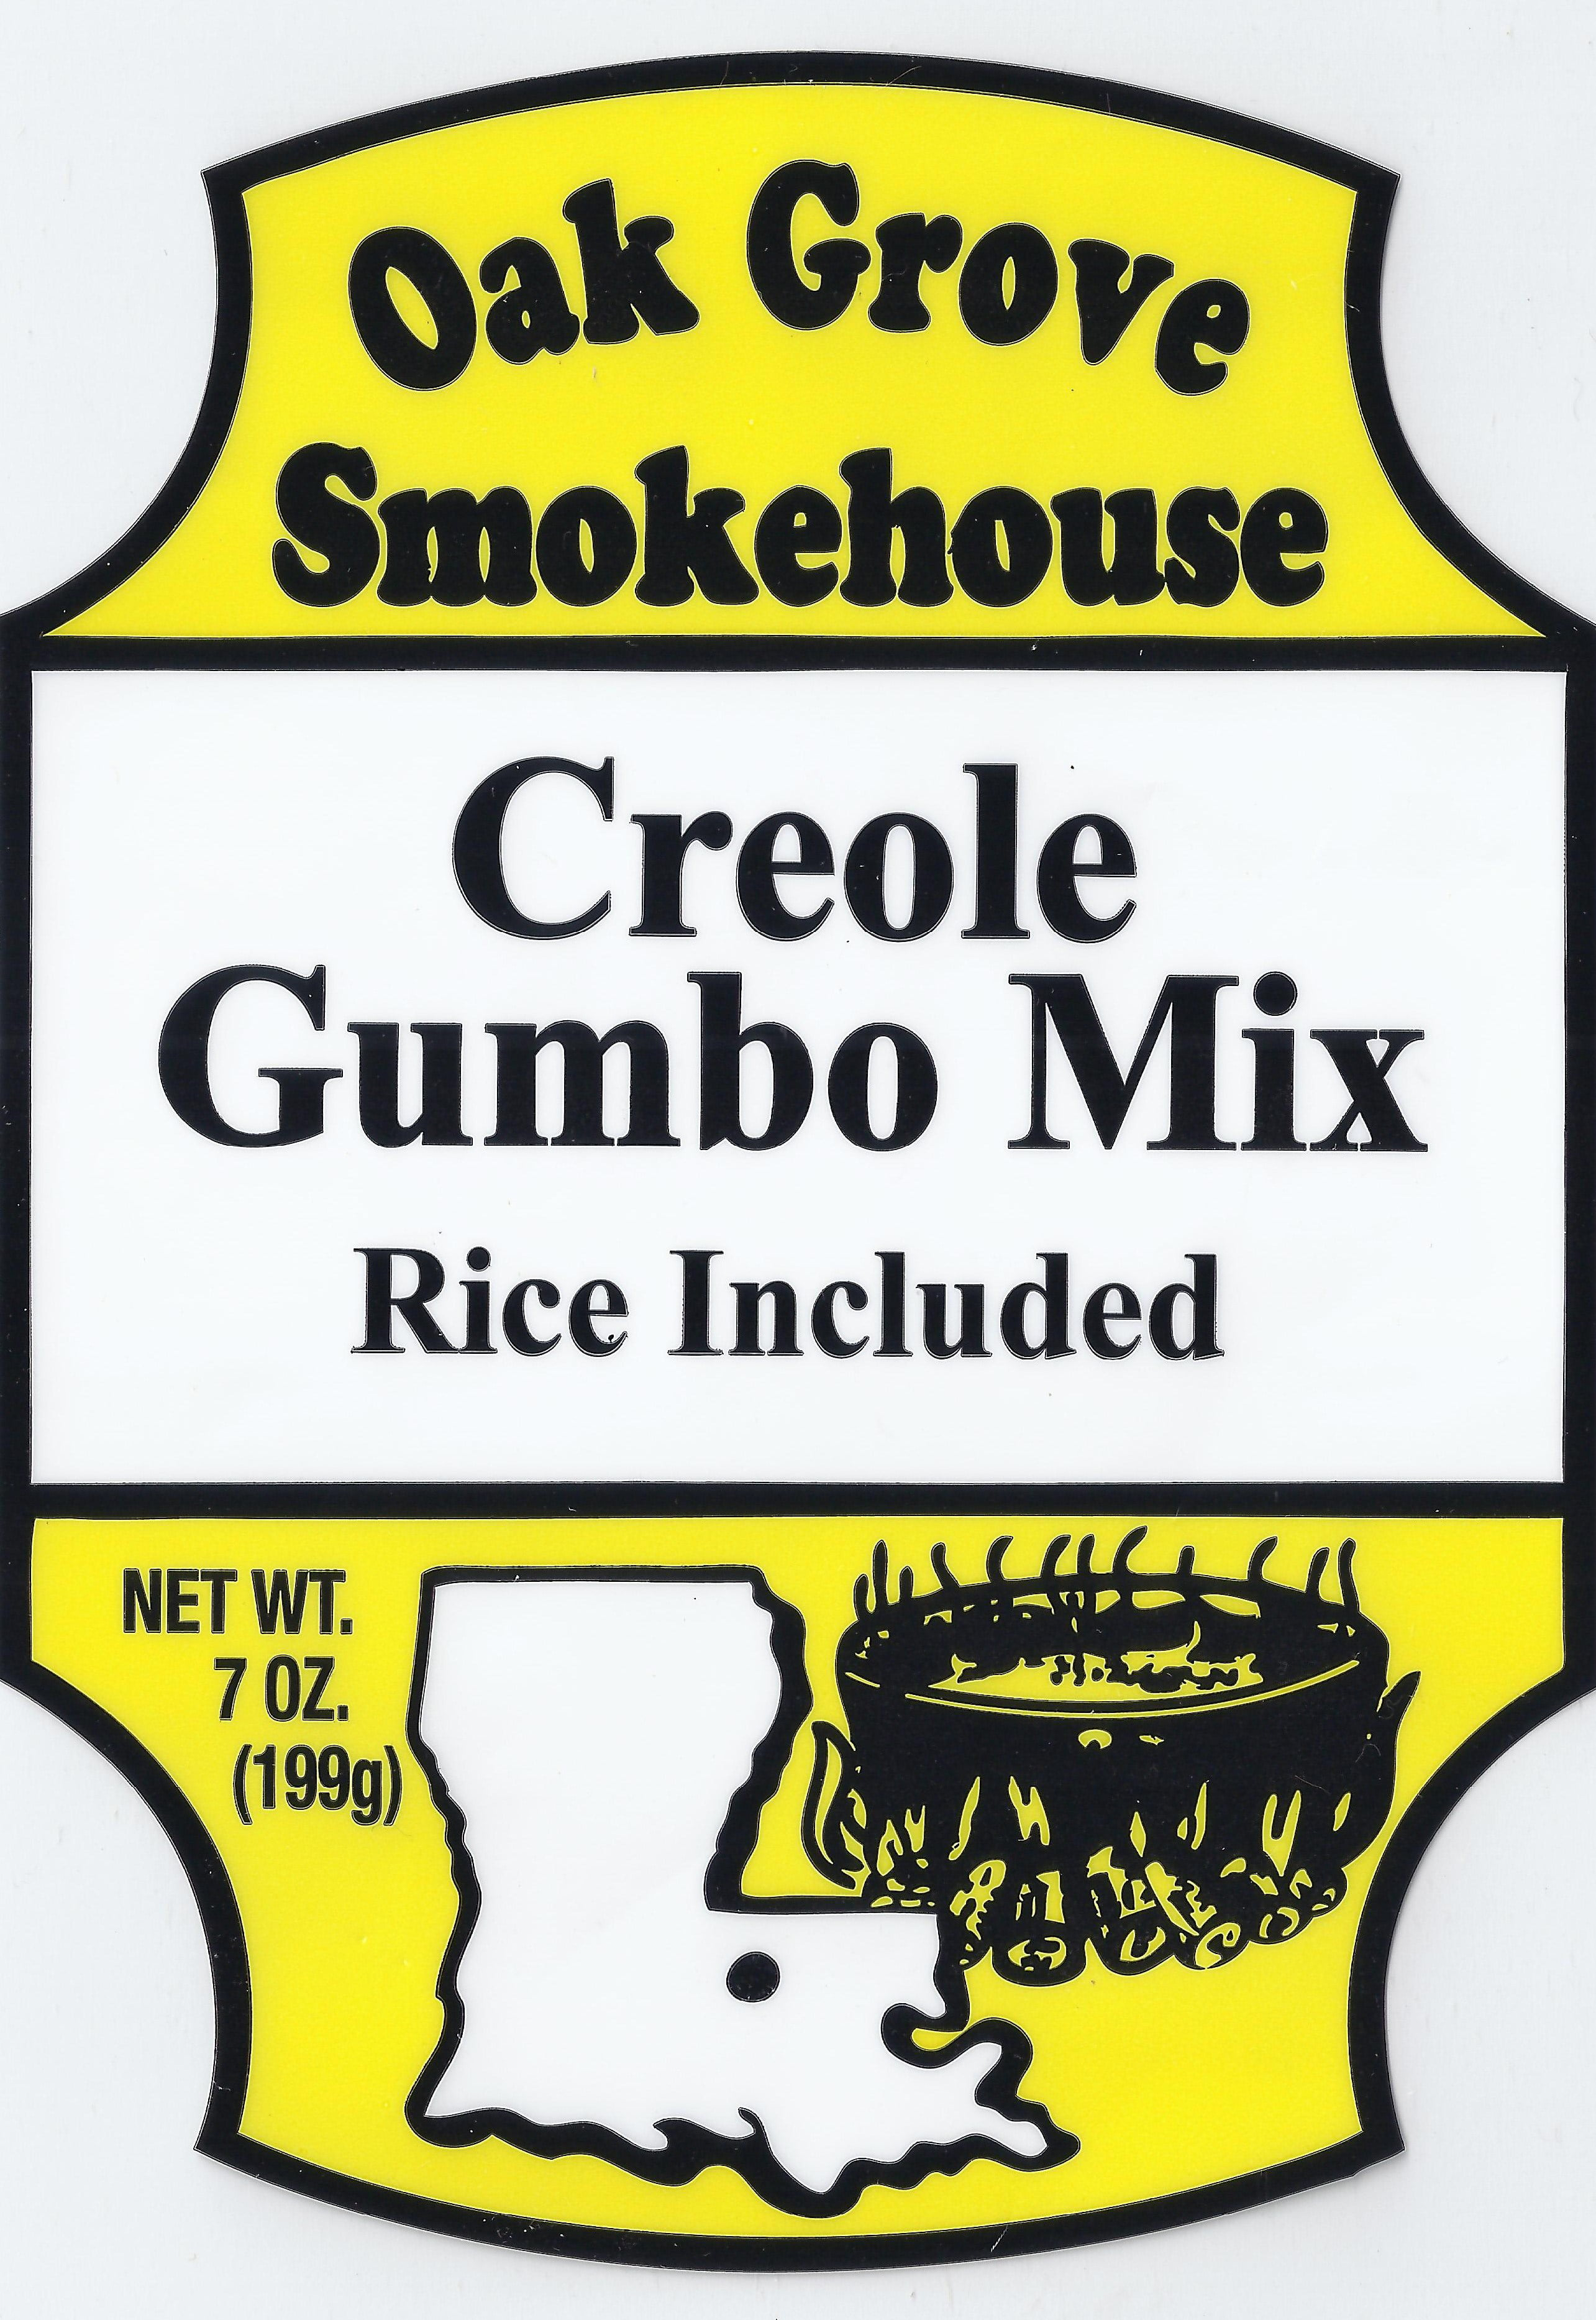 7 oz. Creole Gumbo Mix Rice Included by Oak Grove Smokehouse, Inc.